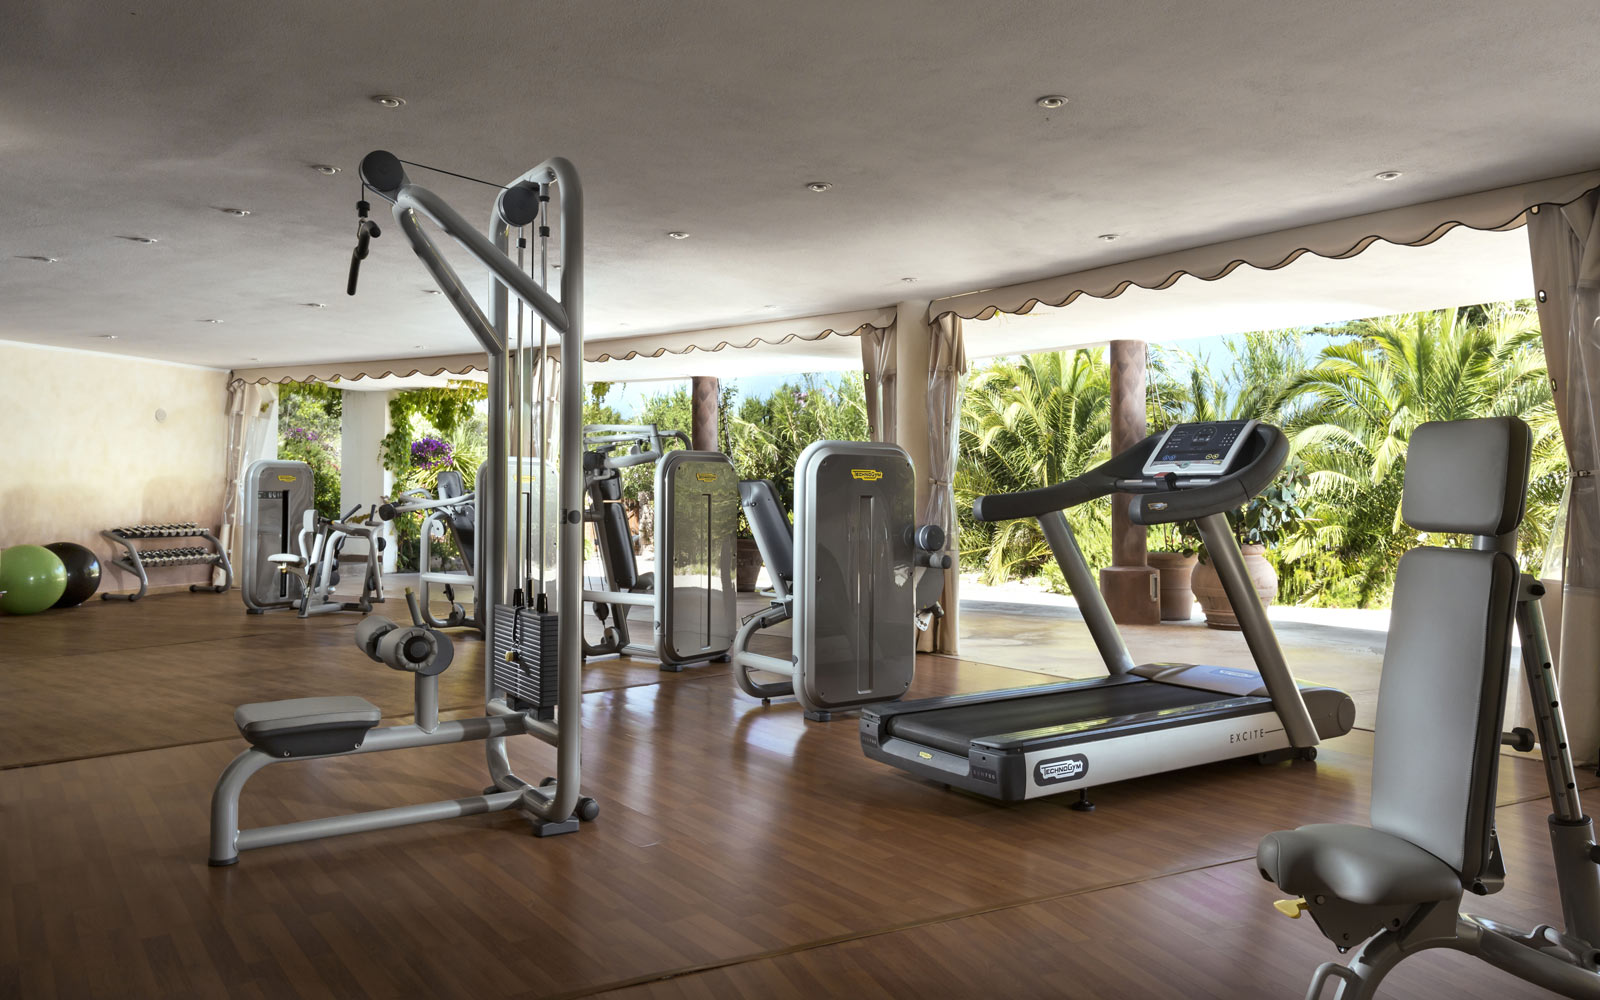 Gym at Marinedda Thalasso & Spa